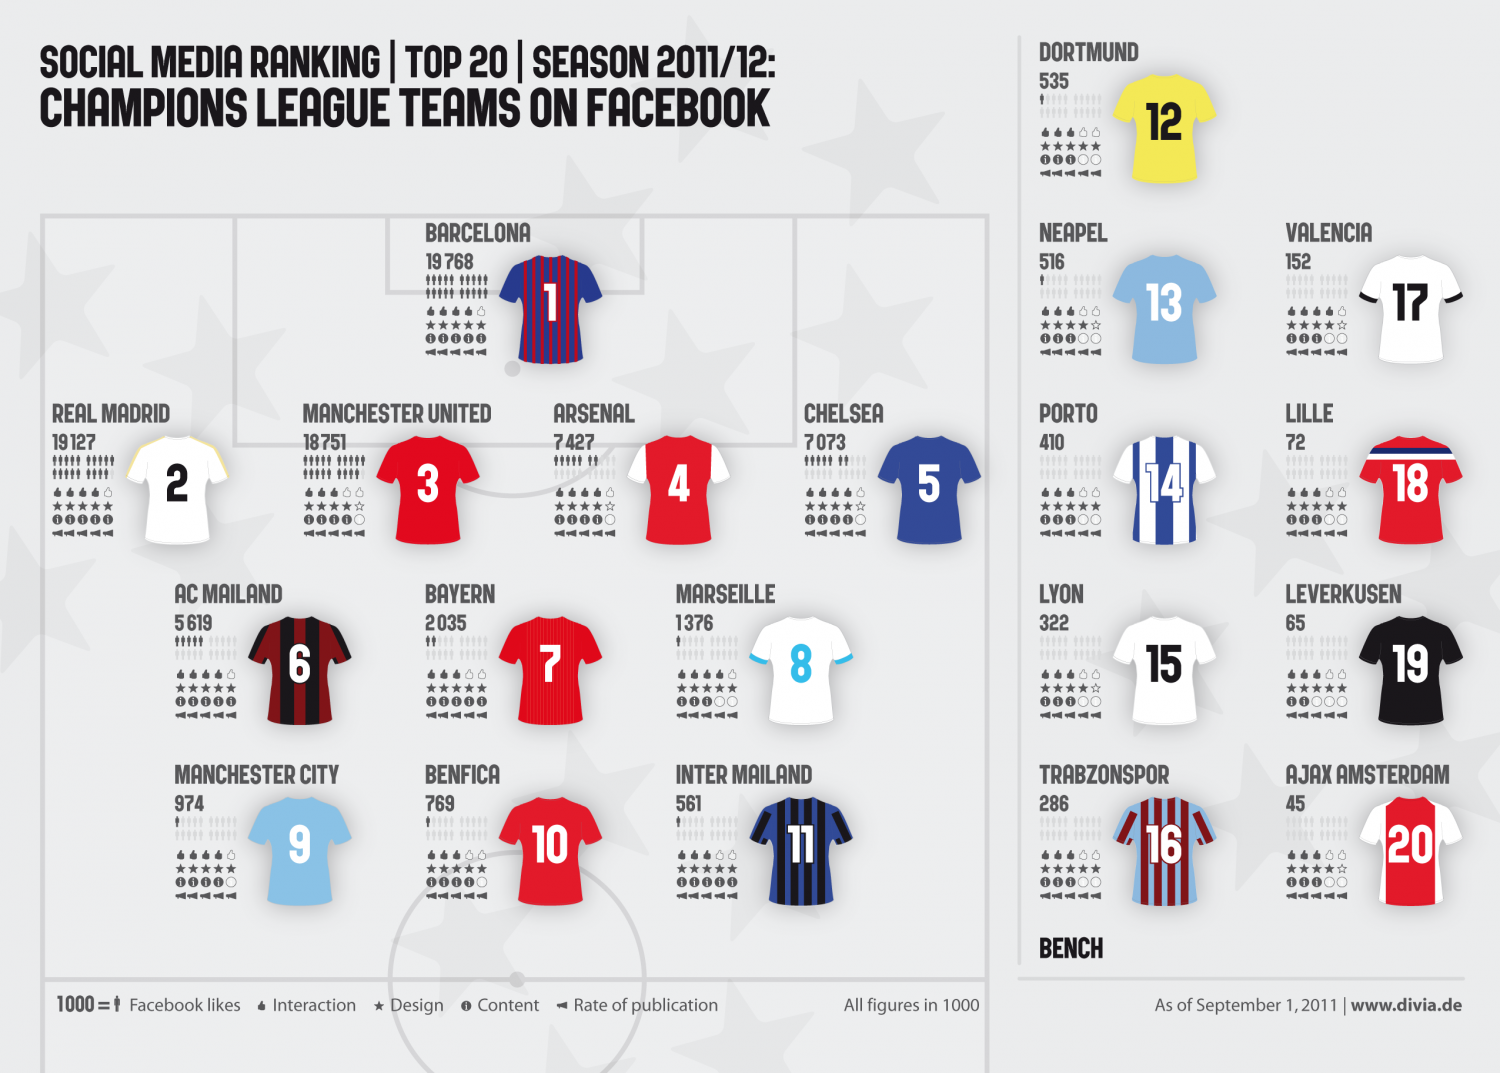 UEFA Champions League Teams on Facebook Infographic